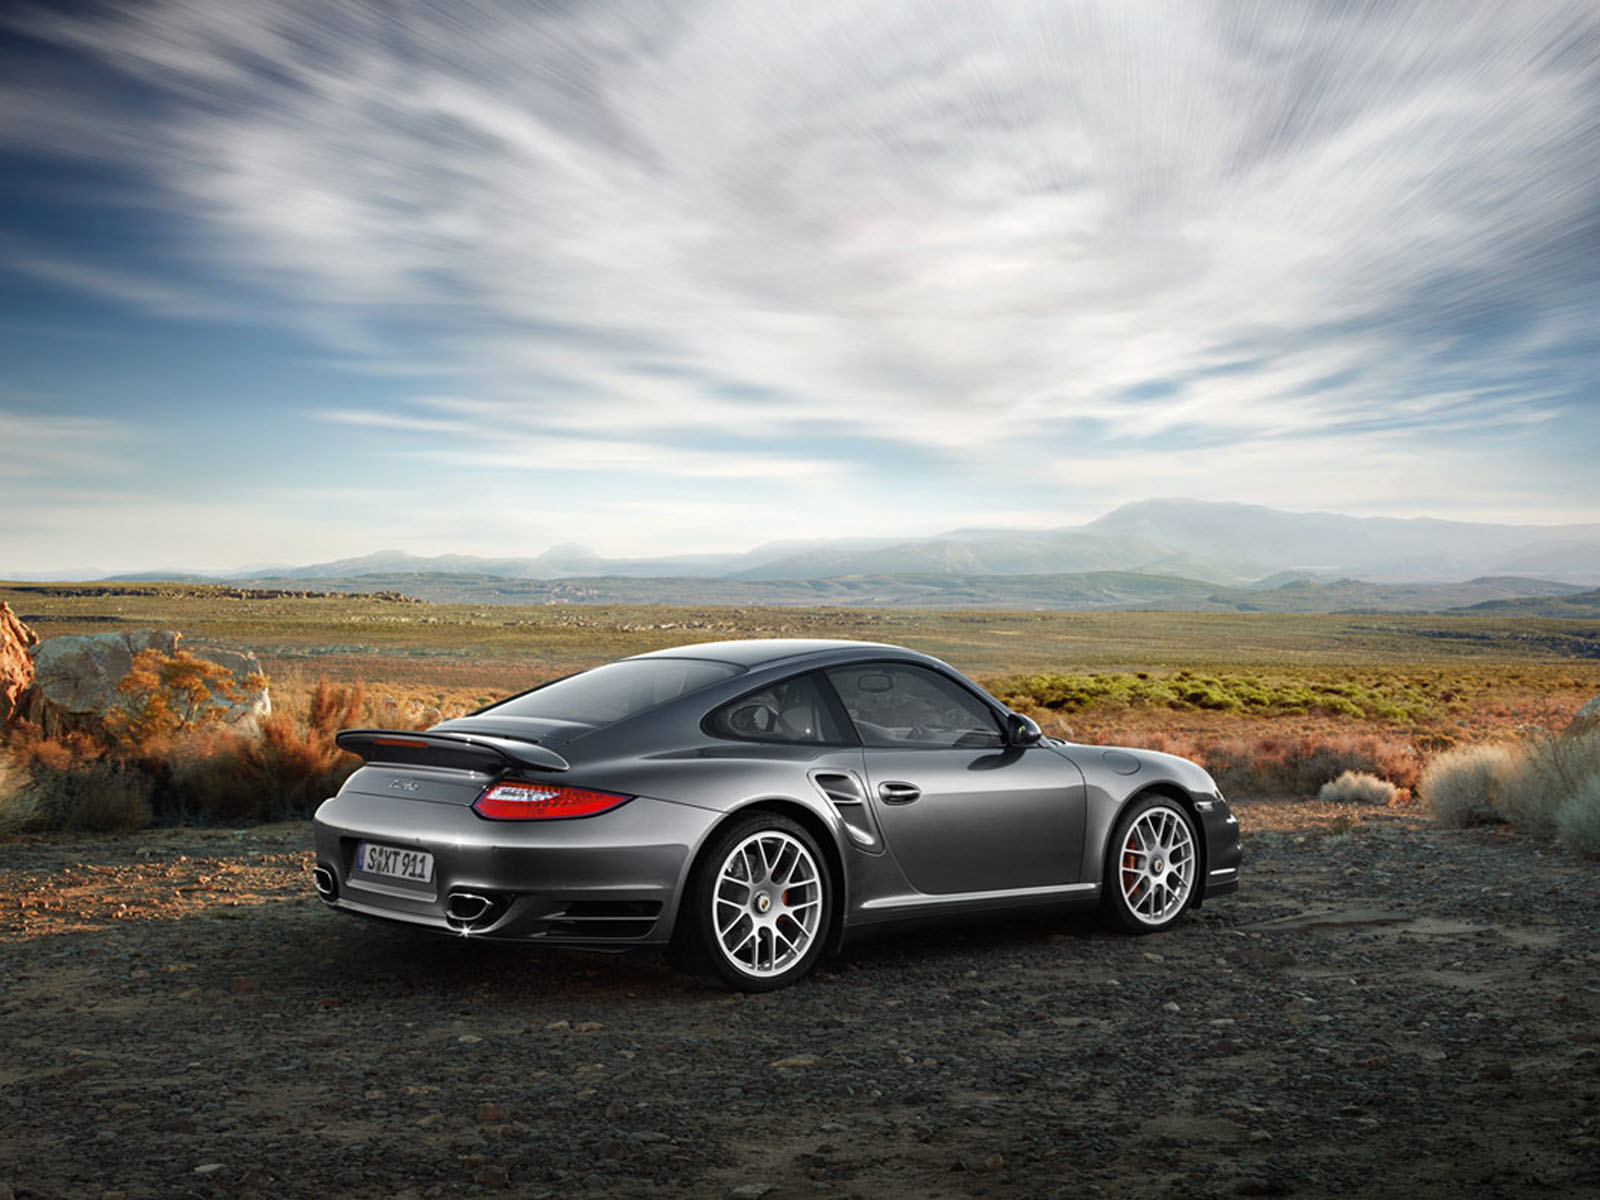 porsche 911 turbo wallpaper - wallpapersafari